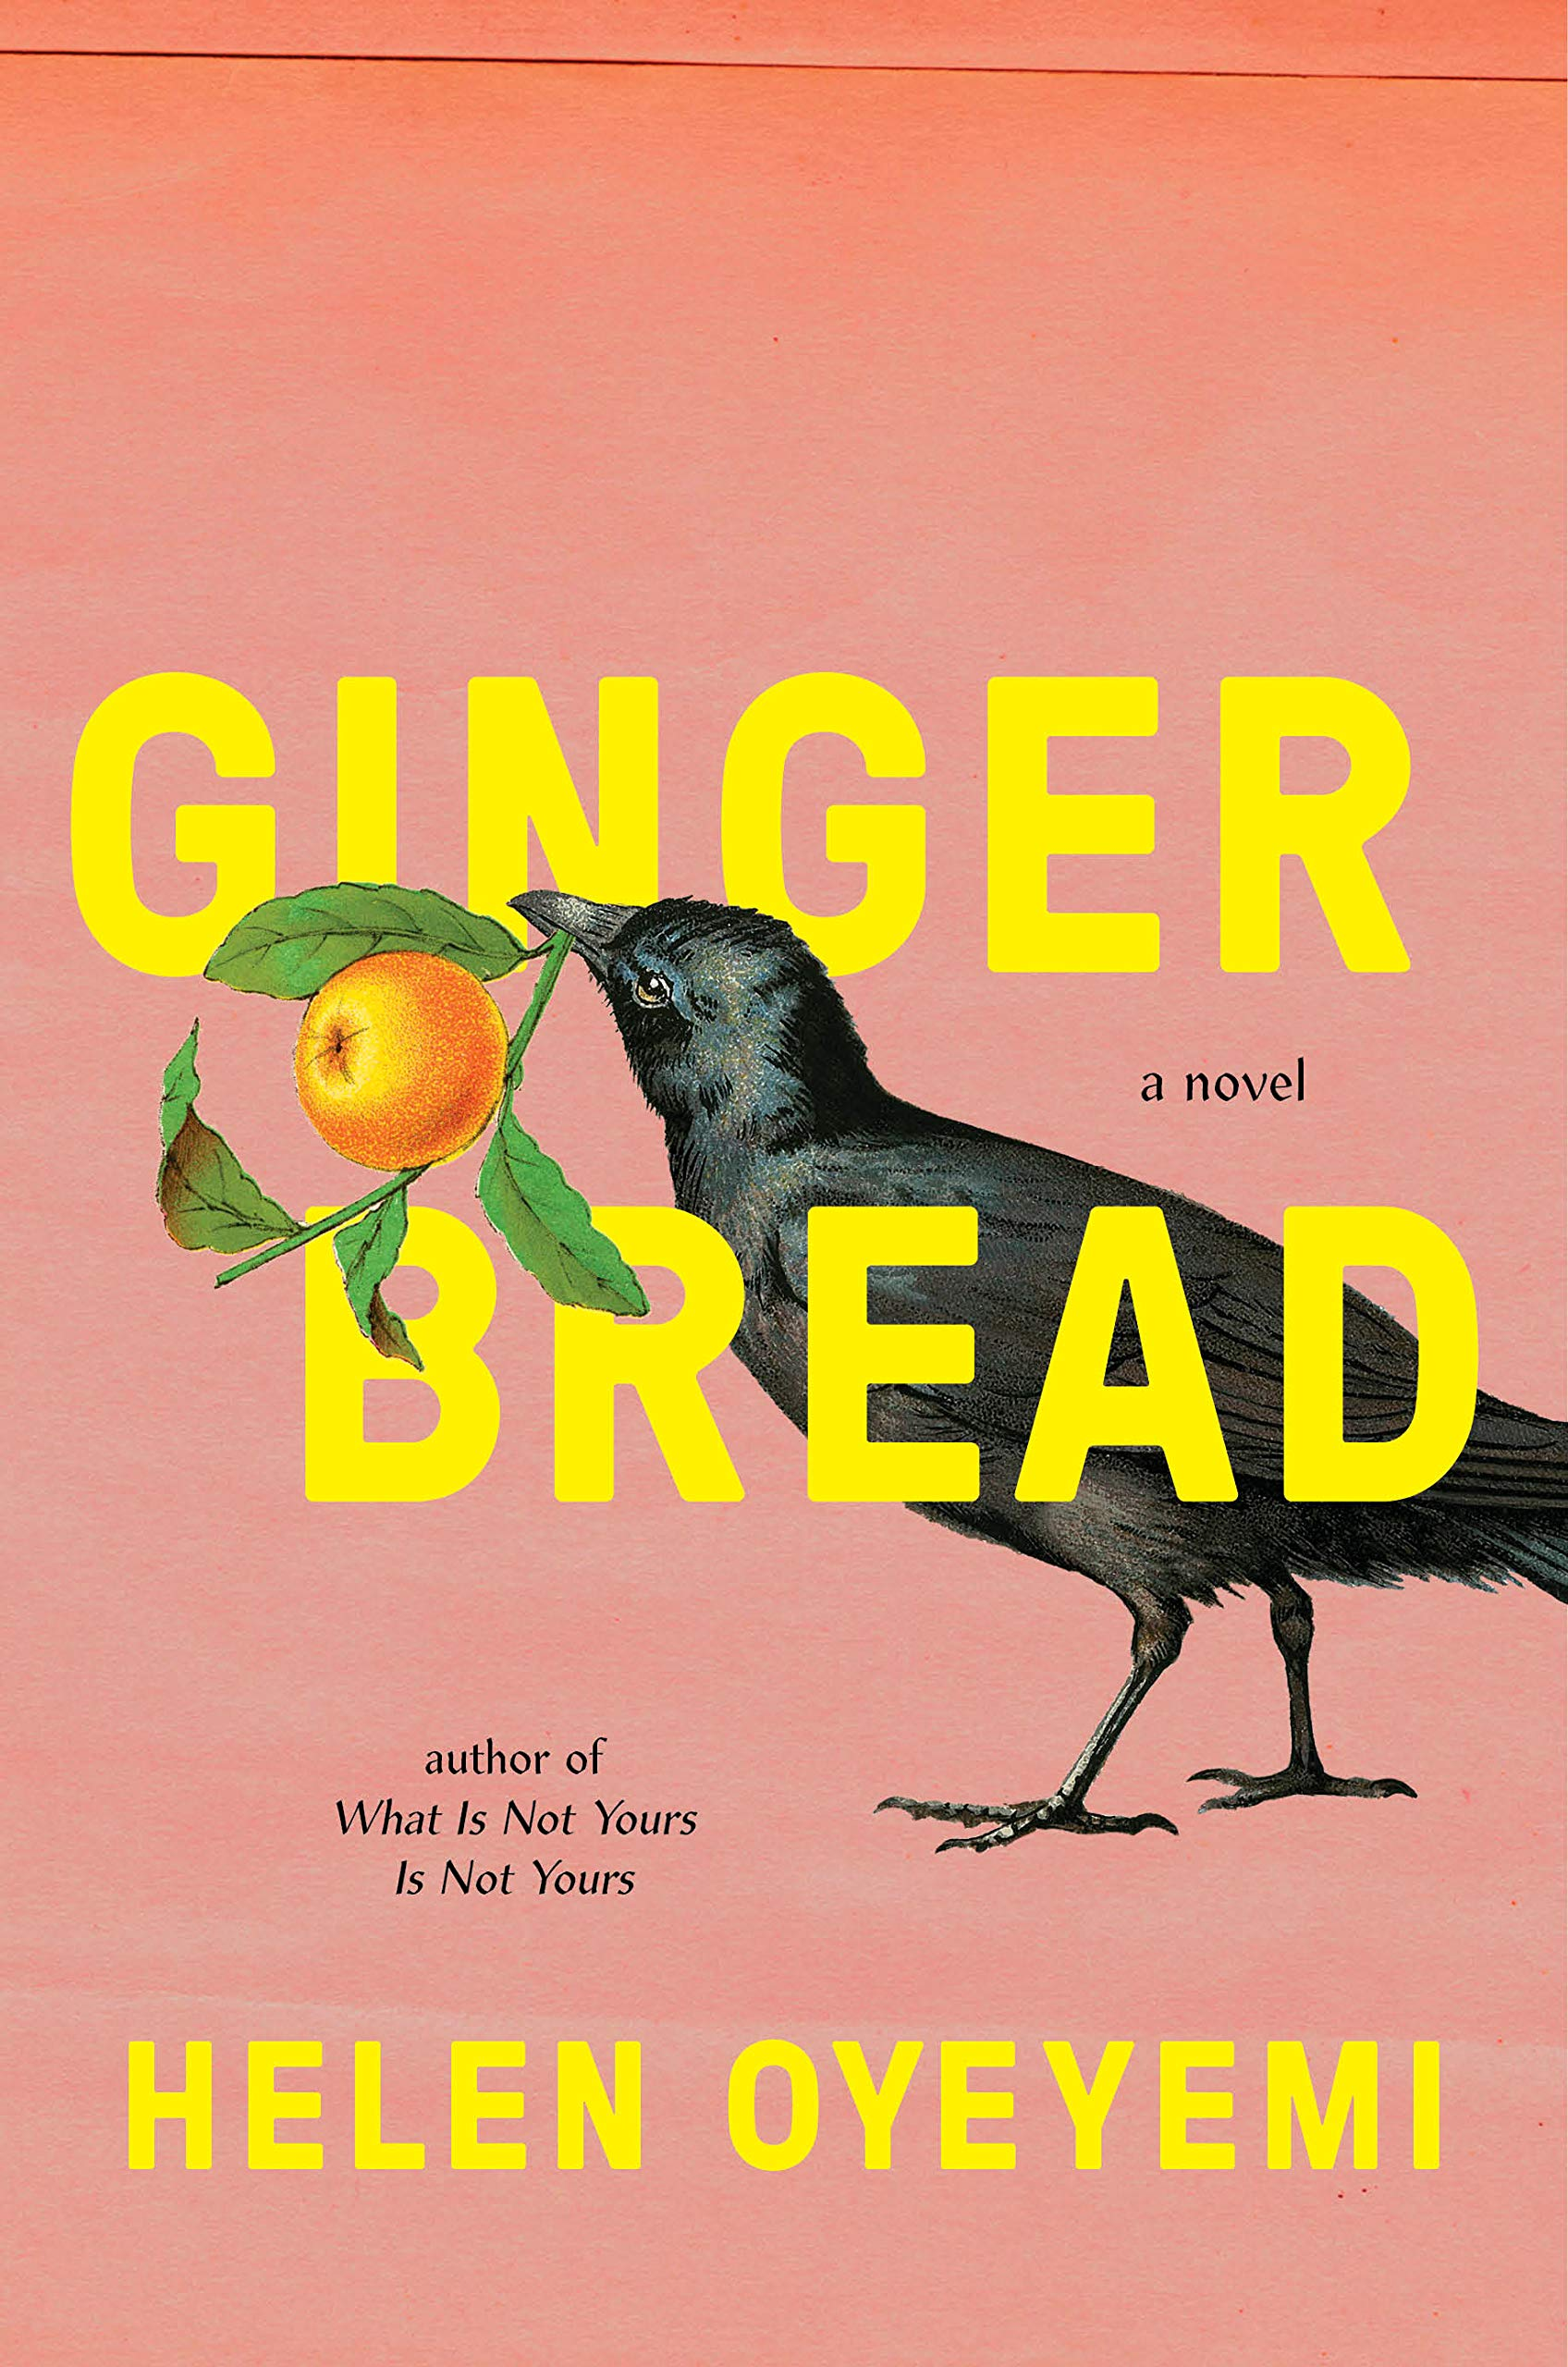 Gingerbread 2019 book releases